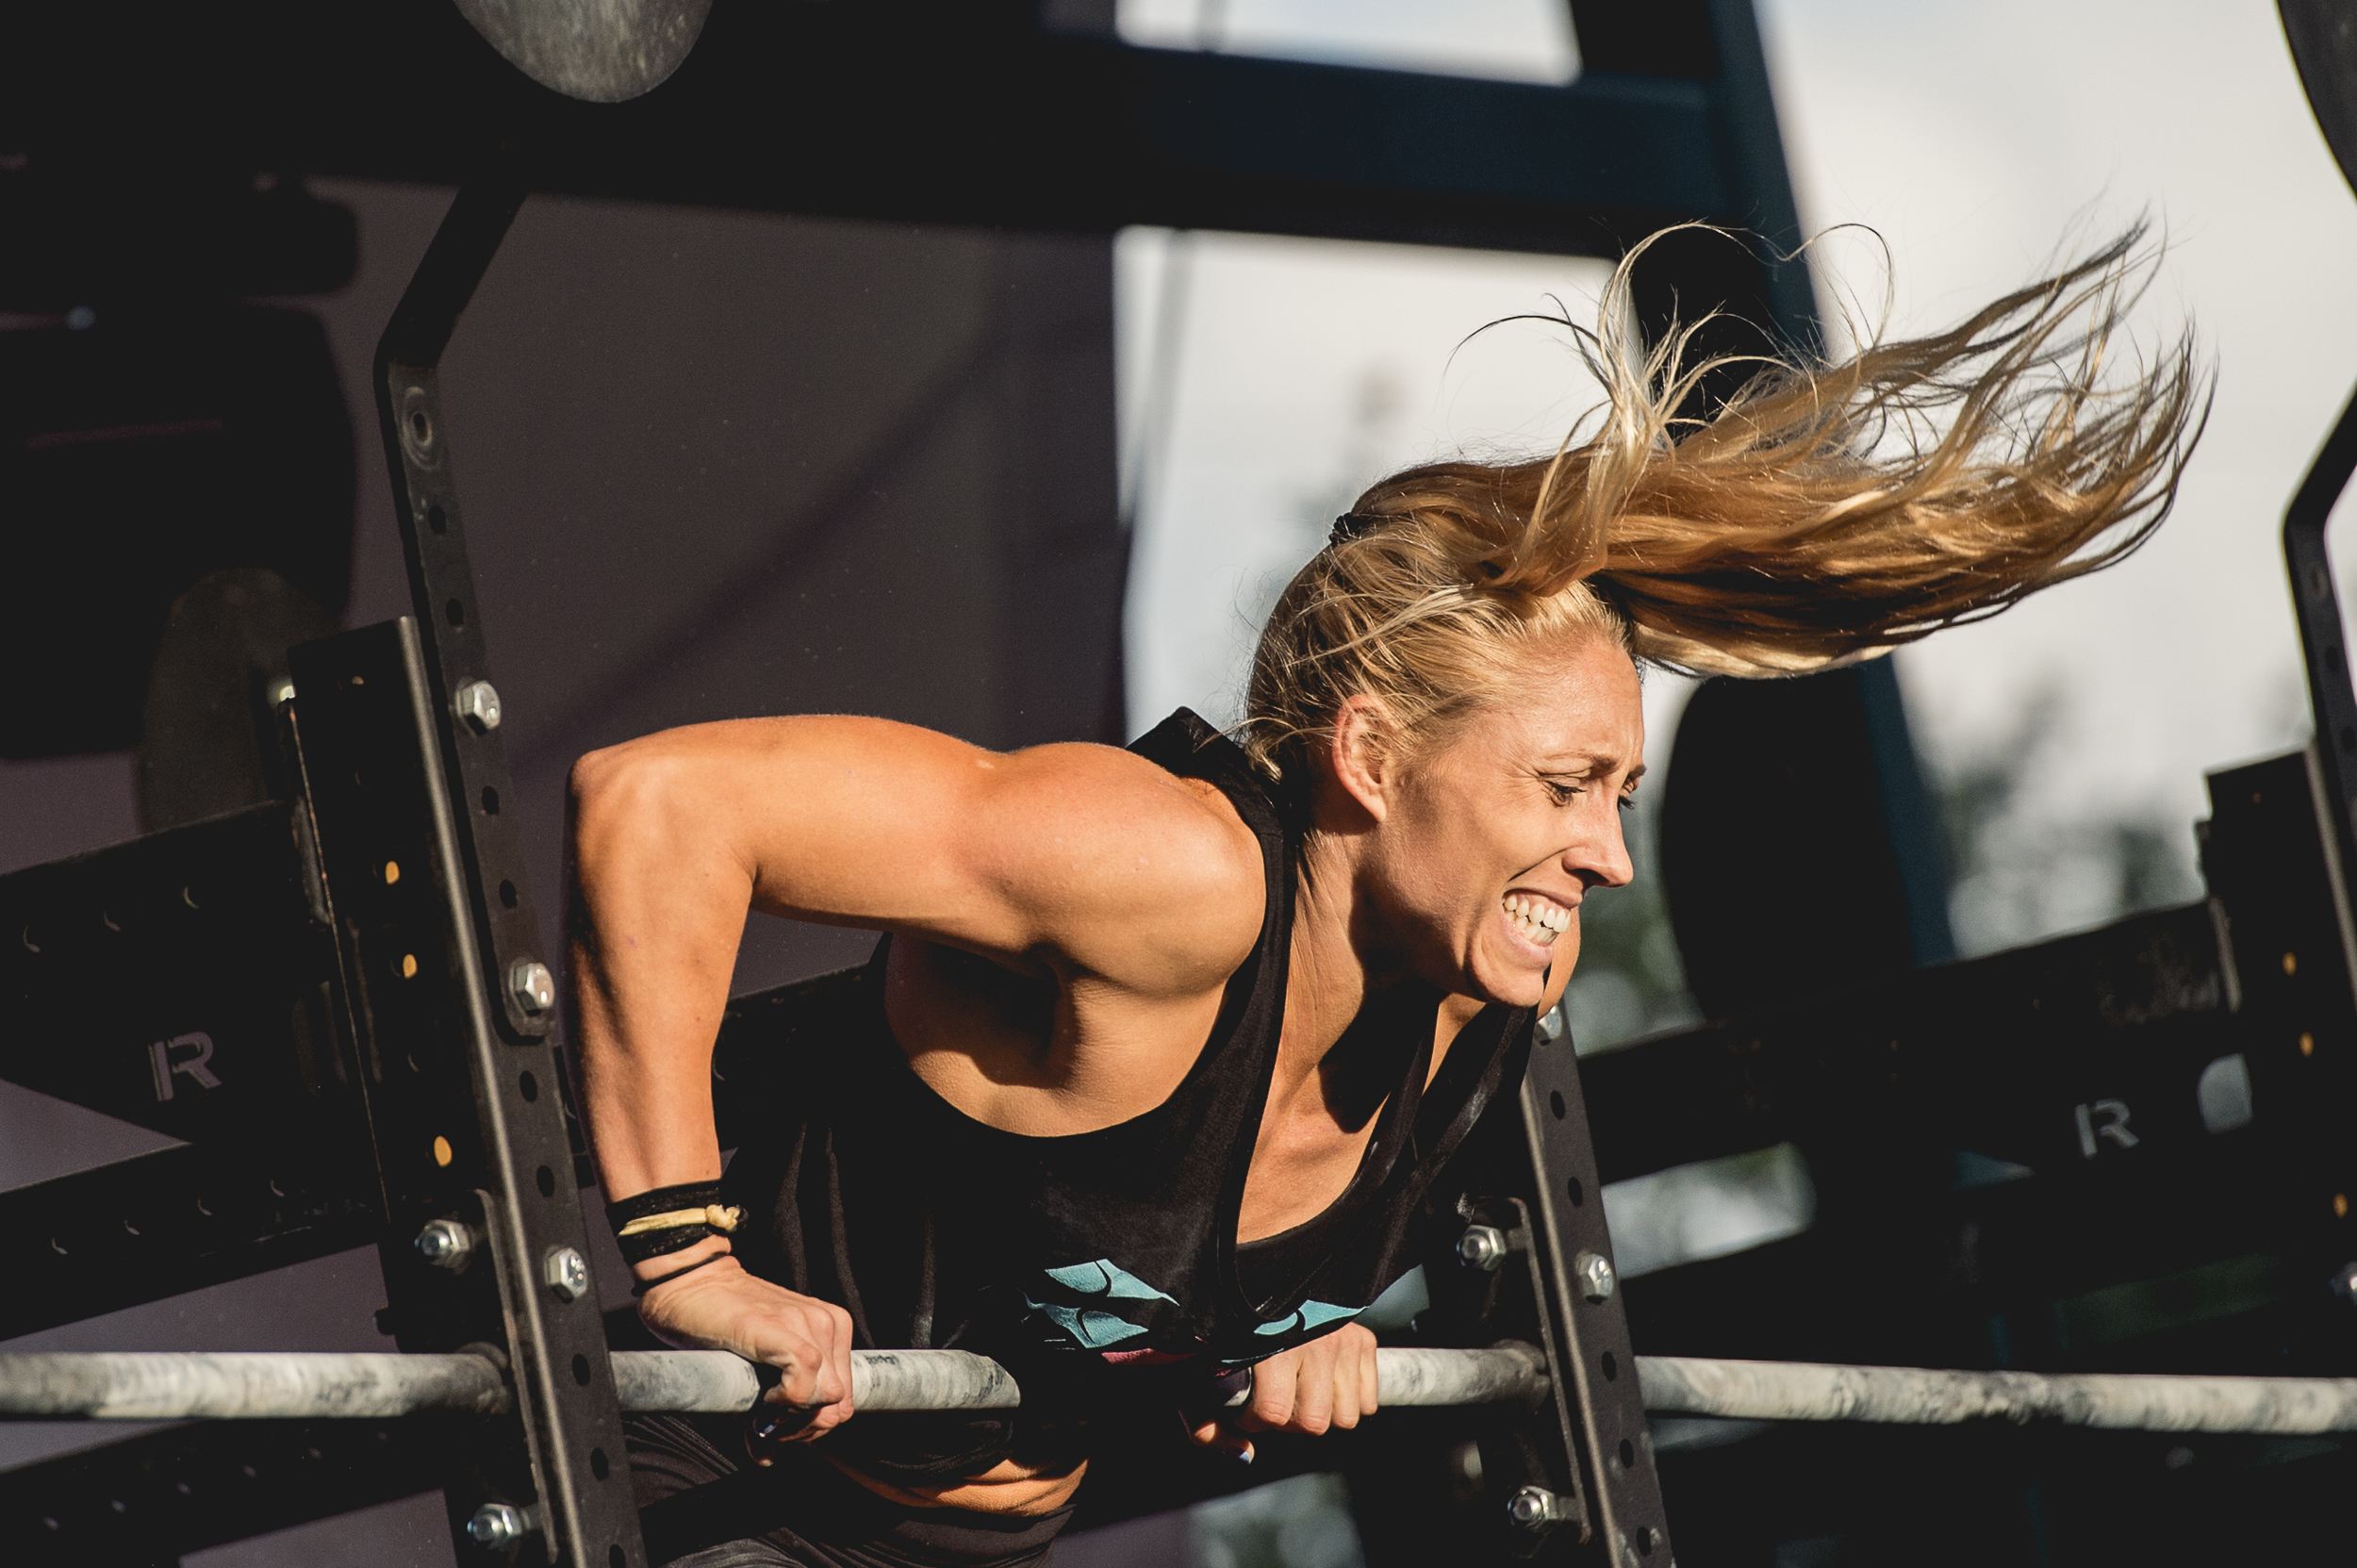 2018 Wodapalooza - Day 3, Photo Alessio Neri-001-49.jpg